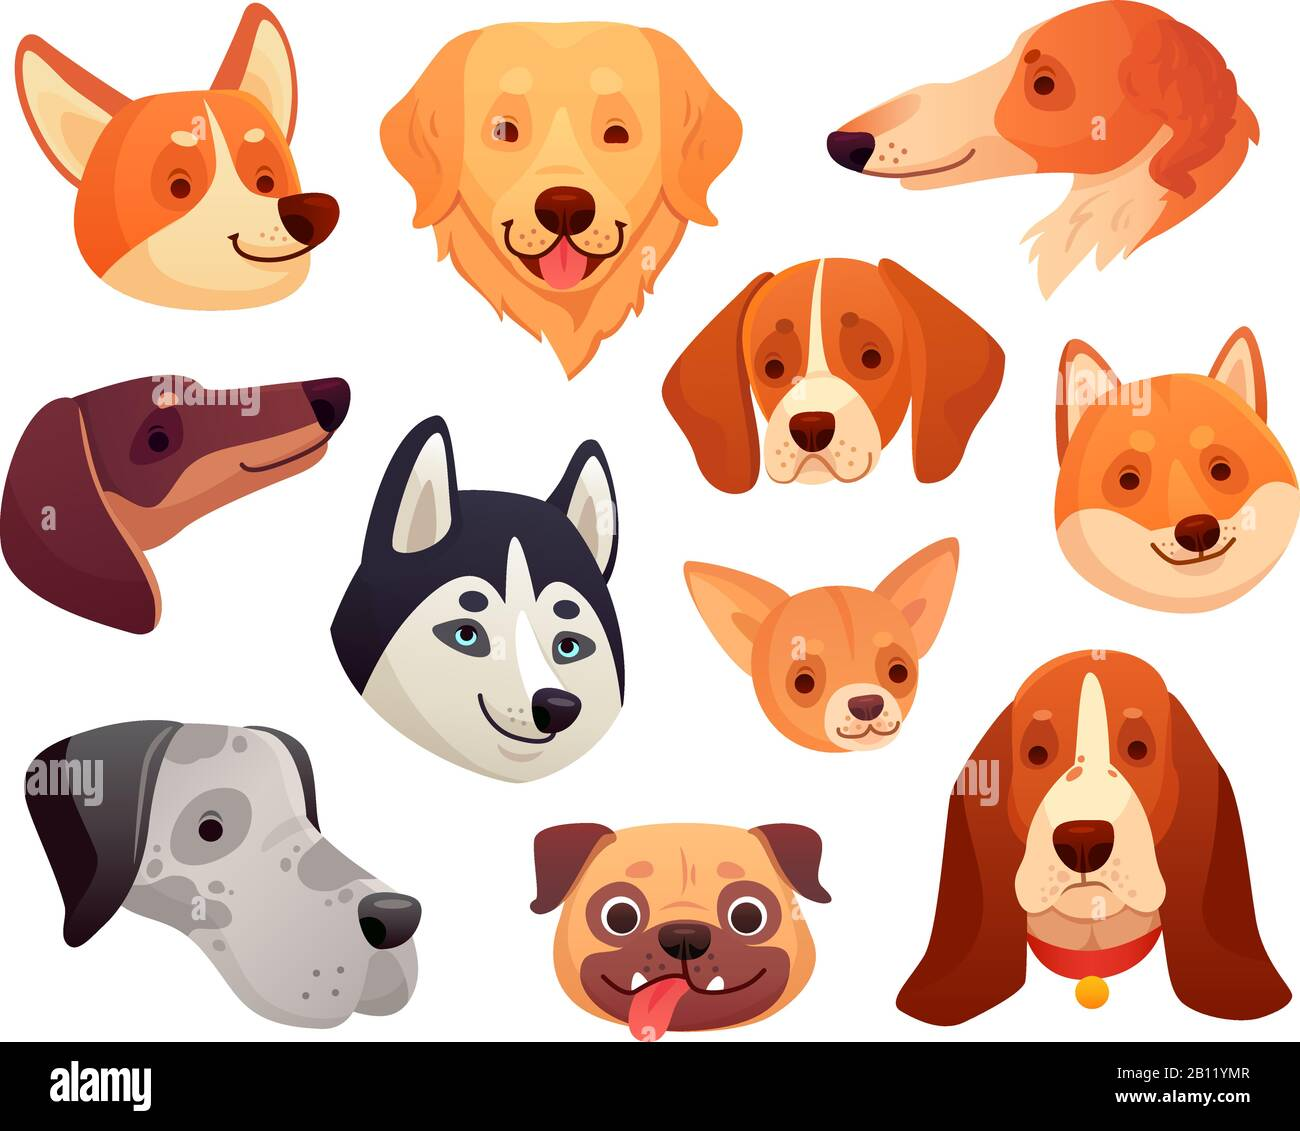 Cartoon Dog High Resolution Stock Photography And Images Alamy